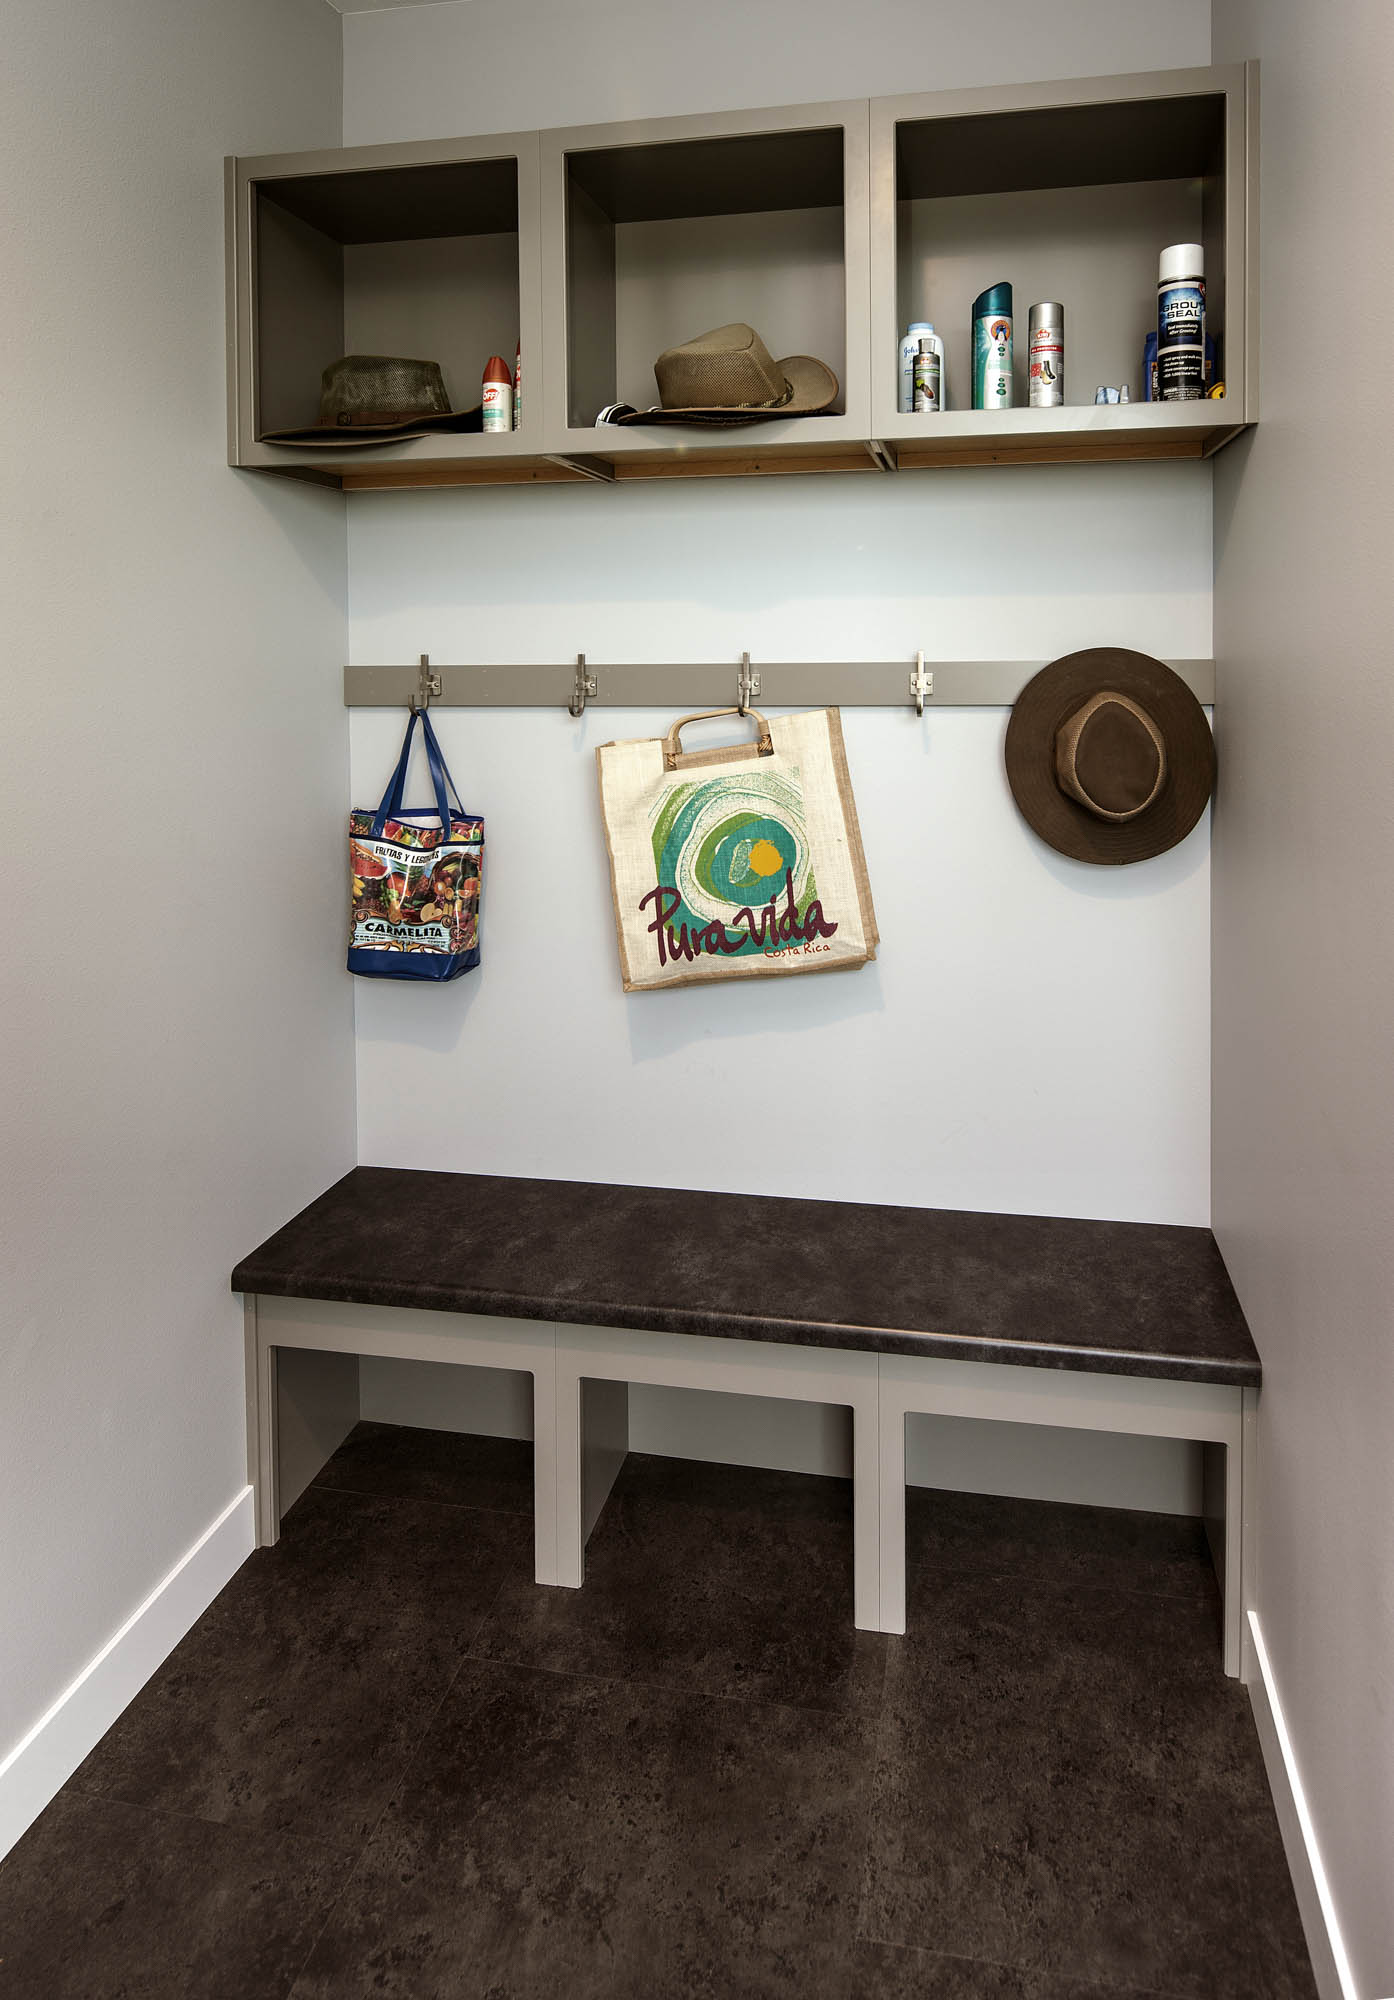 Painted mudroom cabinetry in Dovetail by Showplace Cabinetry